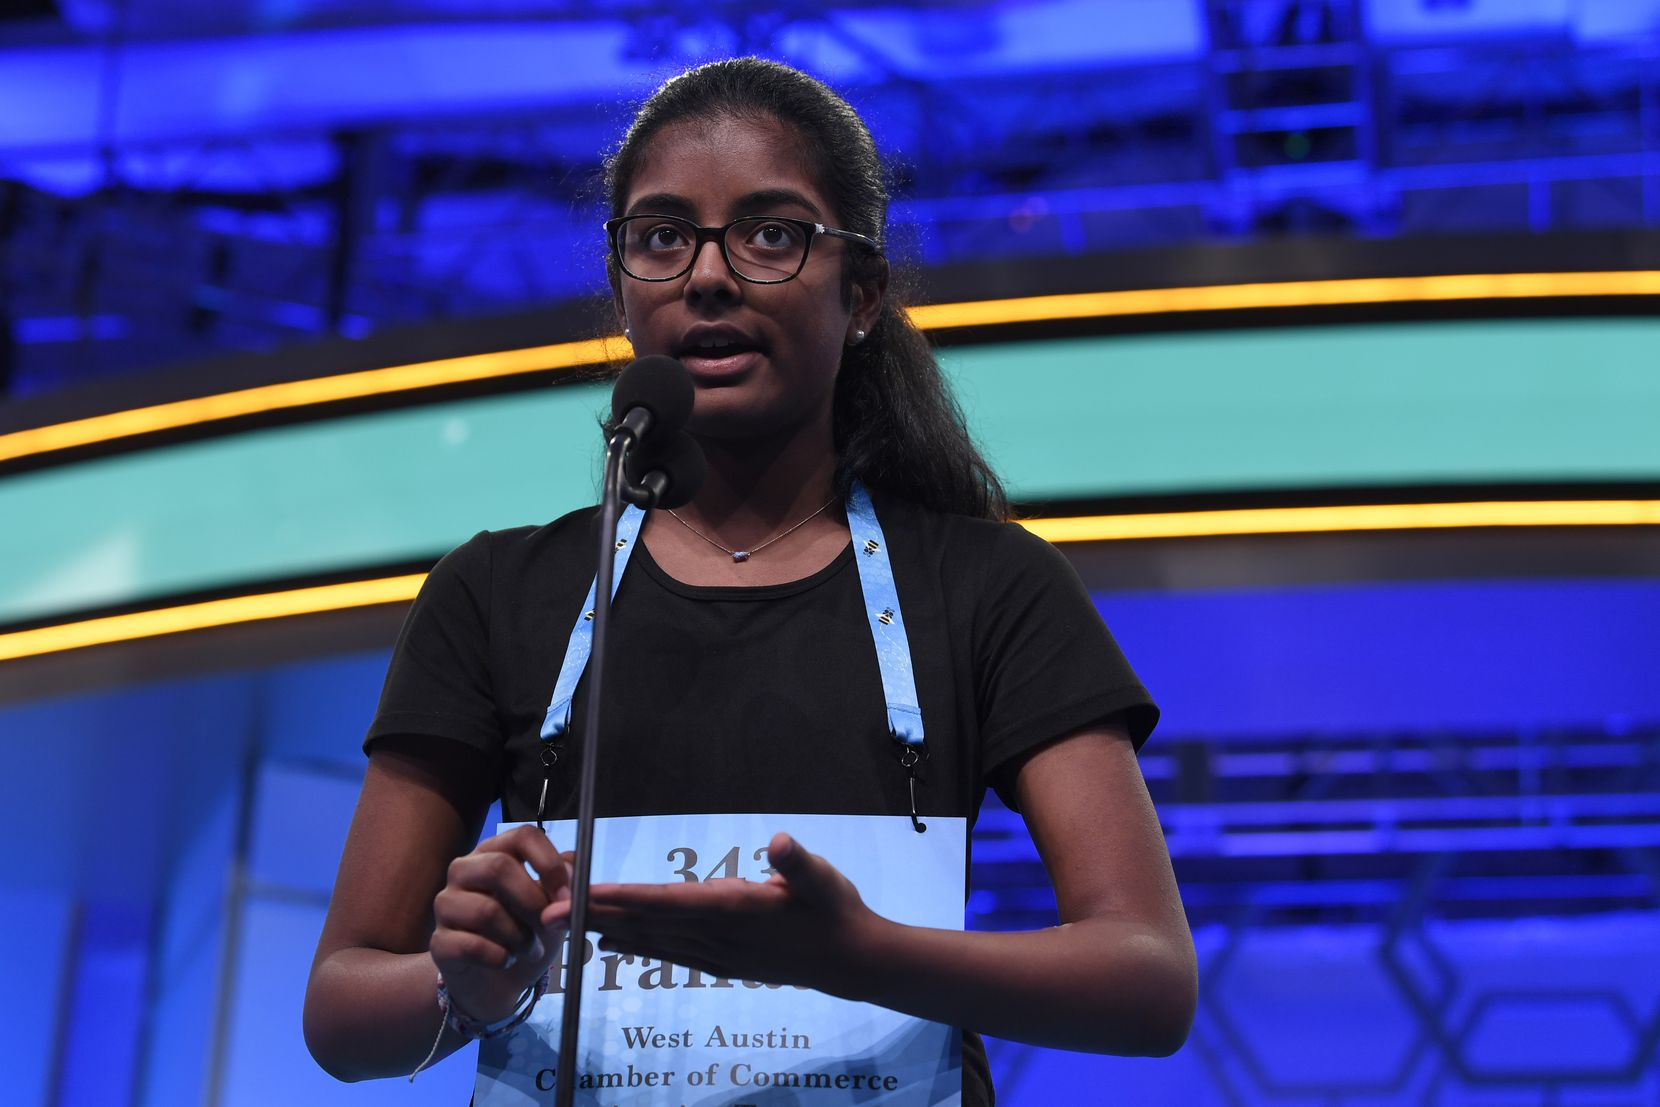 Pranathi Jammula, 13, of Austin, Texas, competes in the second round of the Scripps National Spelling Bee in Oxon Hill, Md., Tuesday, May 28, 2019.